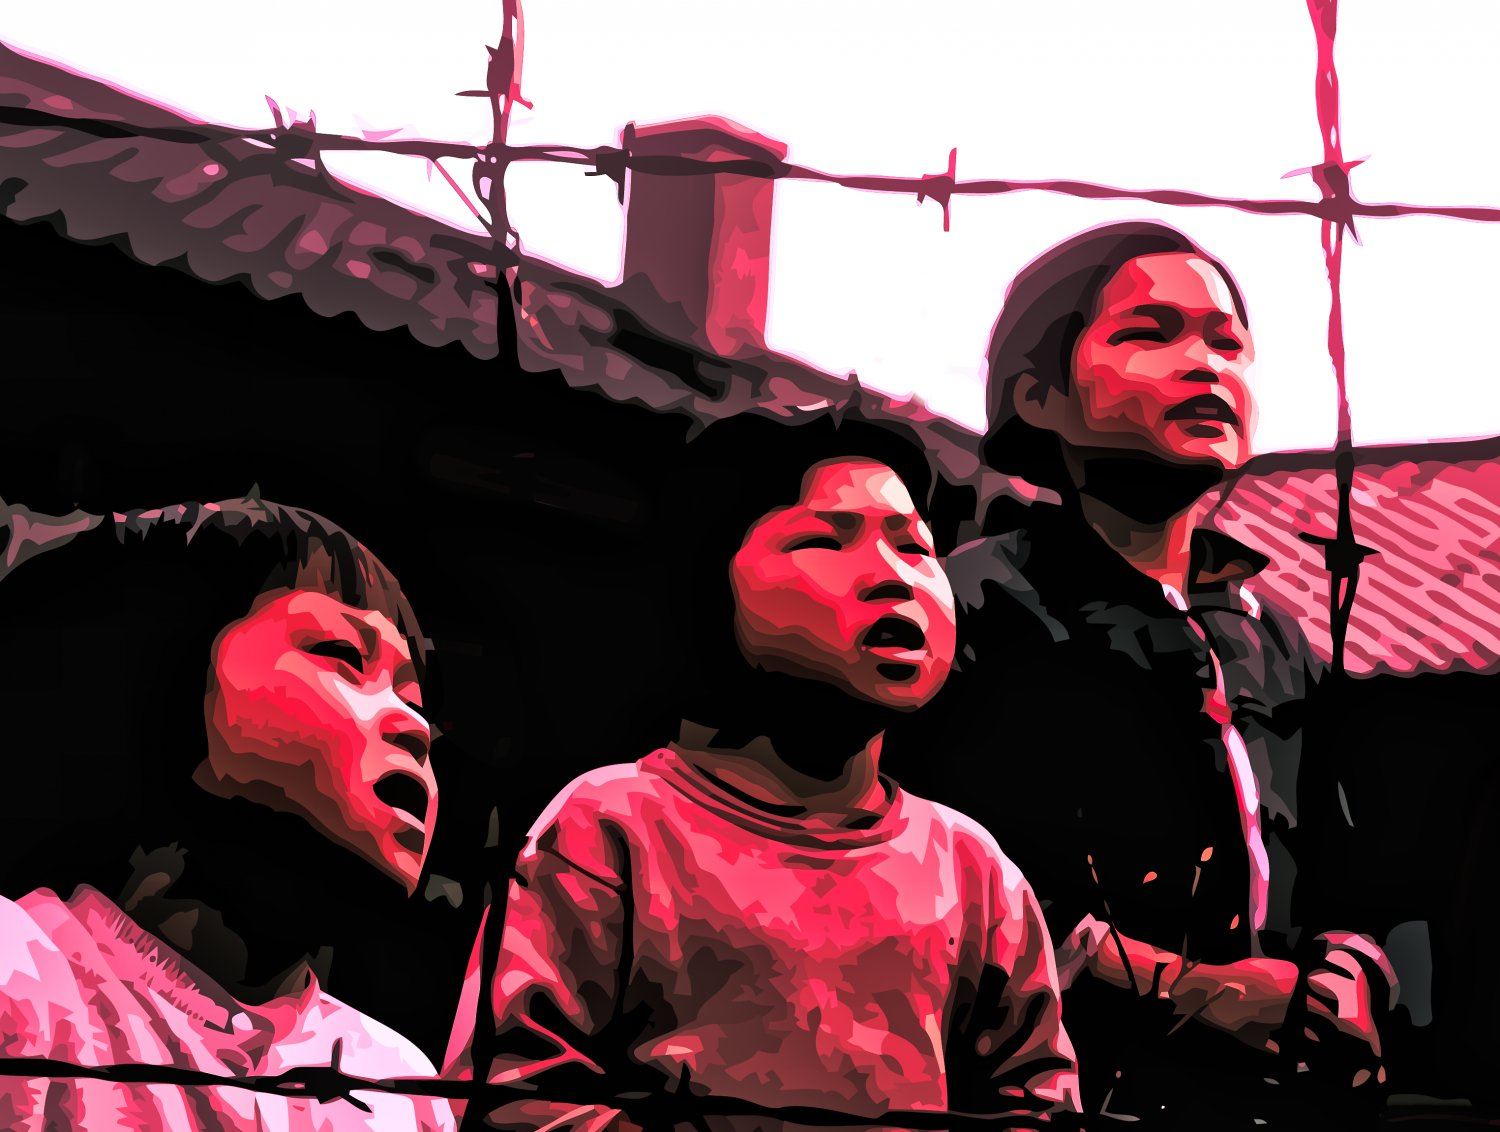 children in a Korean orphanage in tones of red pink and black - Children - Techno-Impressionist Museum - Techno-Impressionism - art - beautiful - photo photography picture - by Tony Karp